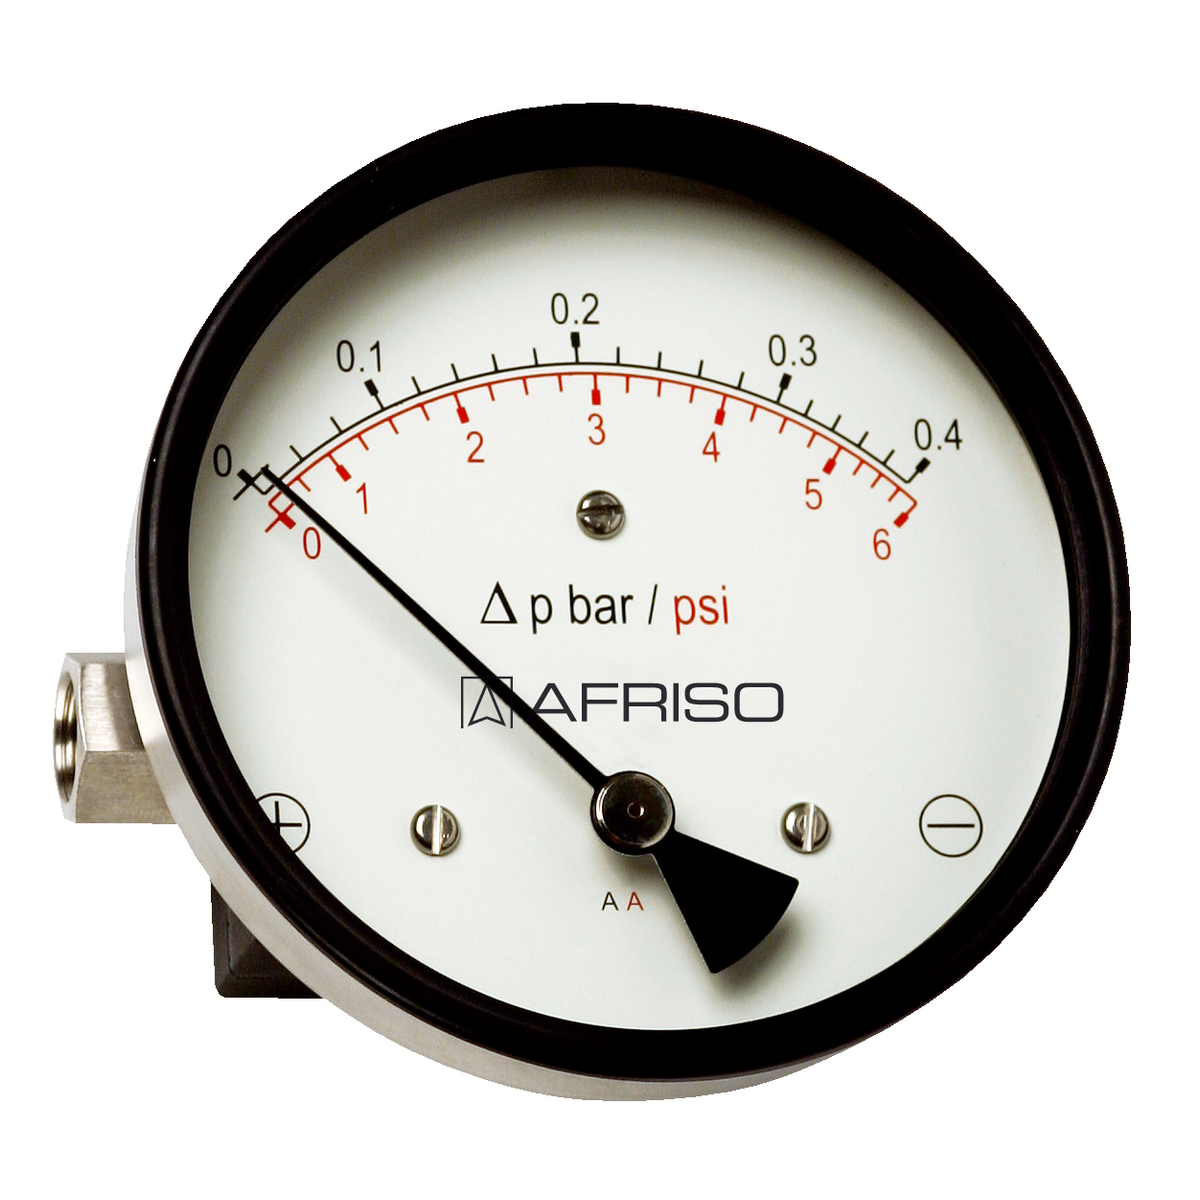 MAG 80, MAG100 Differansetrykkmanometer